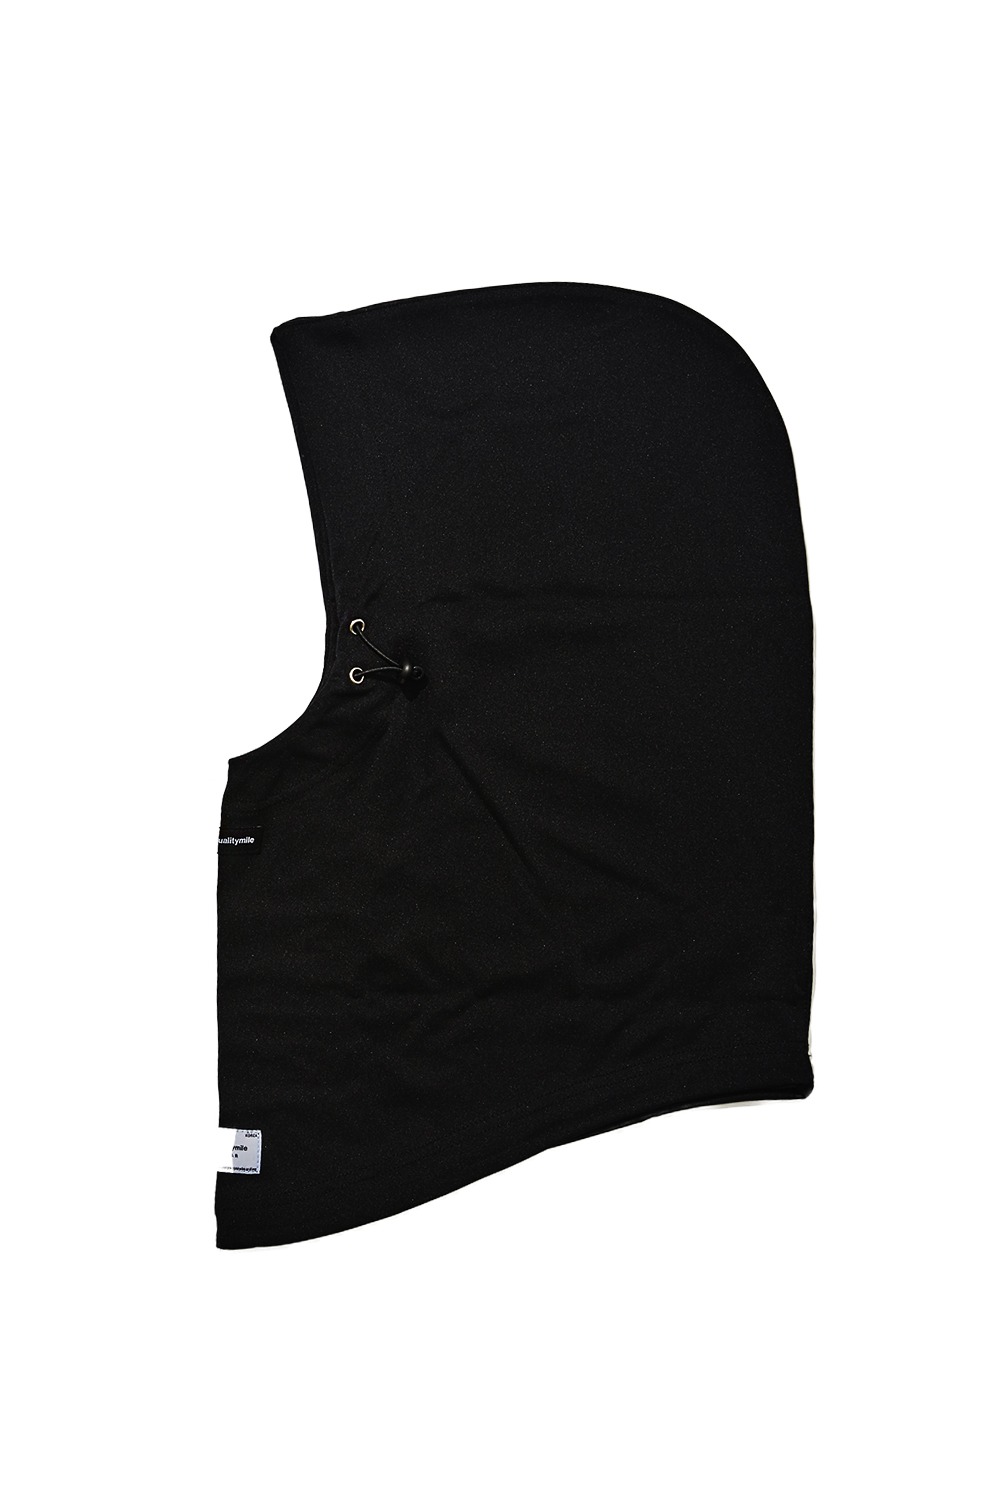 HOOD WARMER / SPANPITCH | BLACK